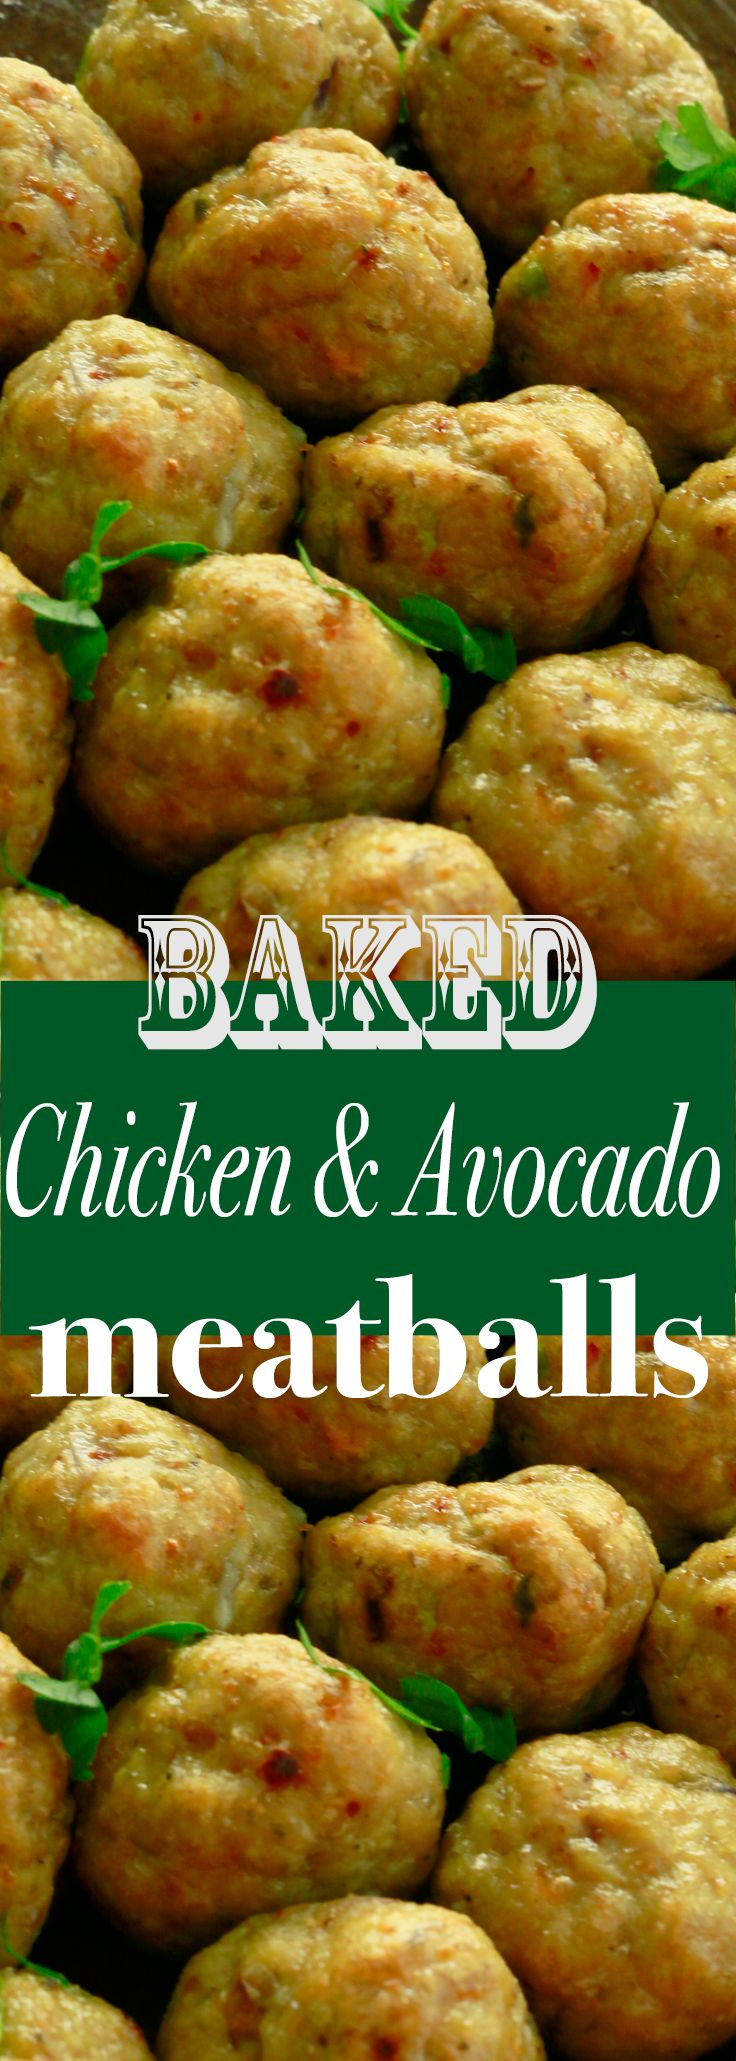 Baked chicken avocado meatballs (ground chicken, avocado, egg, breadcrumbs, seasonings).